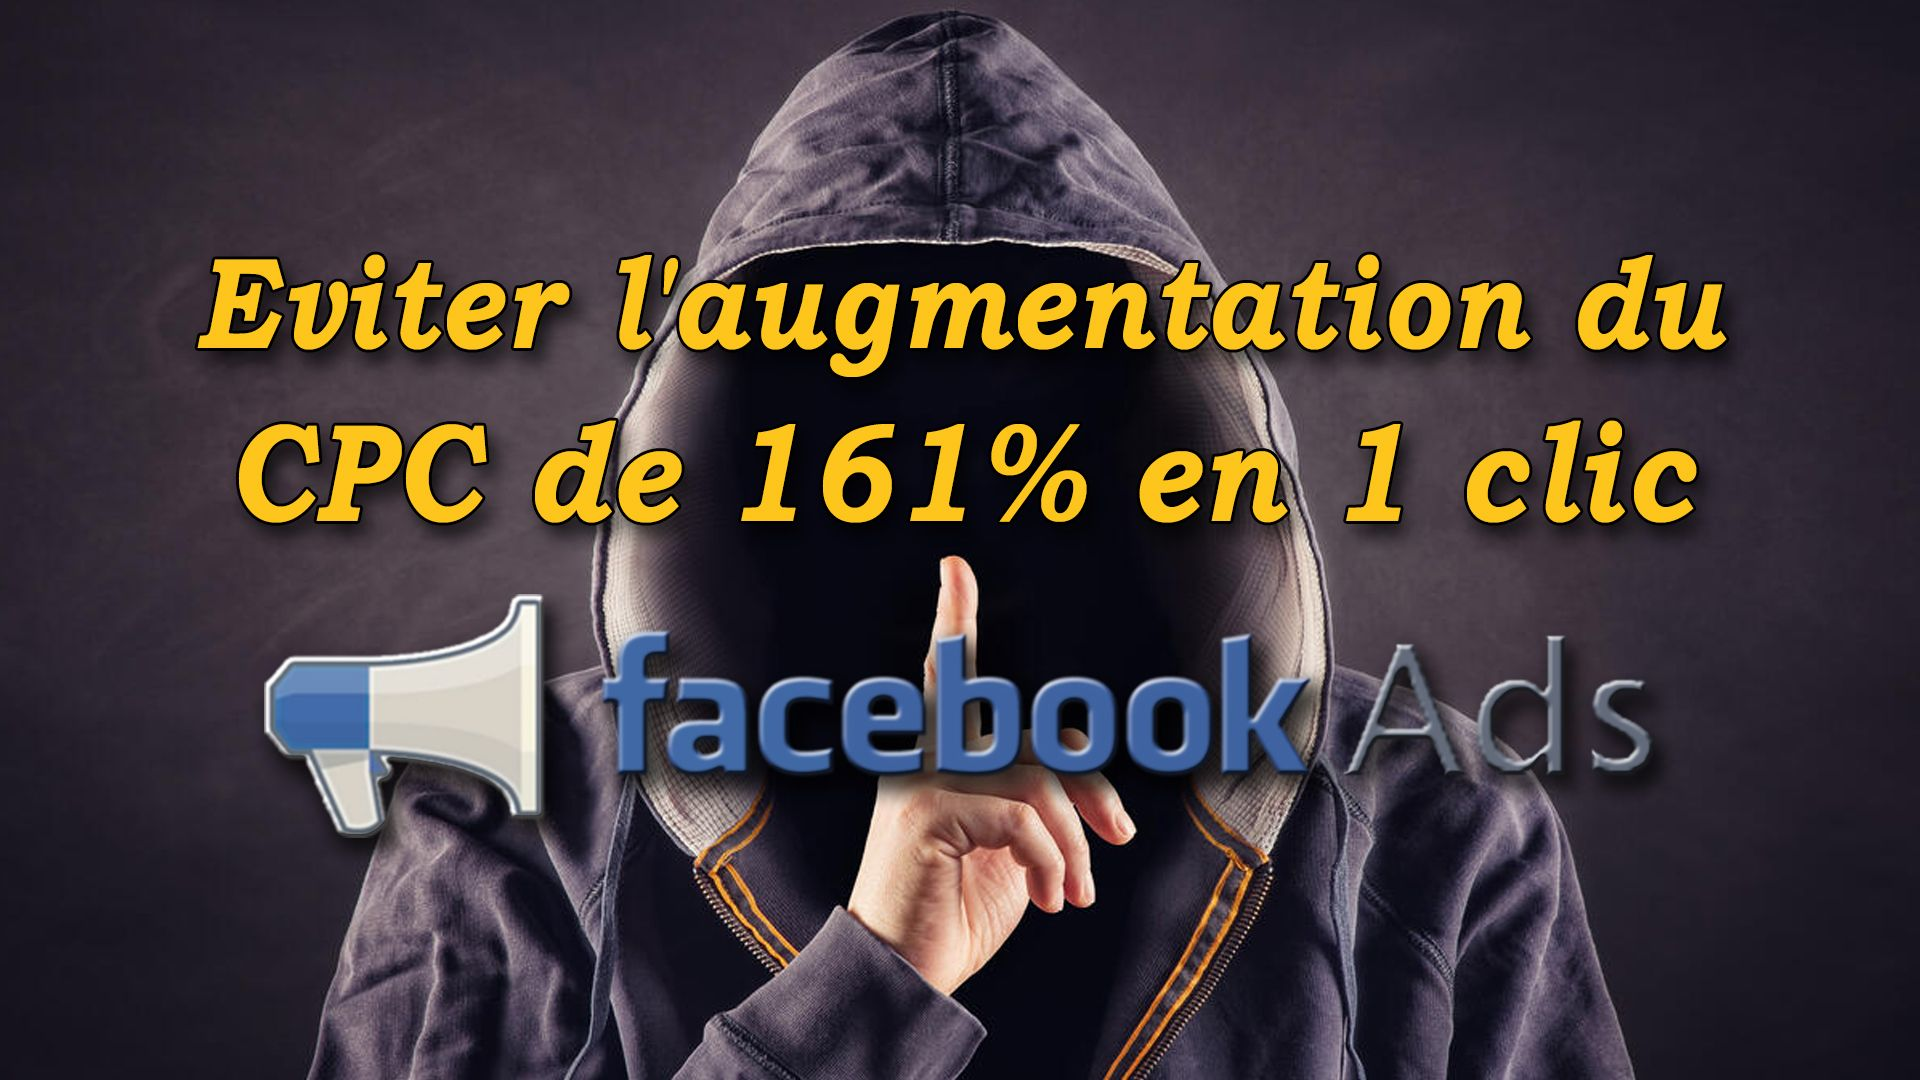 Facebook Ads : éviter l'augmentation du CPC de 161% en 1 clic #GrowthHacking #WebMarketing #FormationGrowthHacking #CentreDeFormationFrance #TunnelAARRR #AARRR #SocialMedia #CommunityManagement #SEO #FacebookAds #Facebook